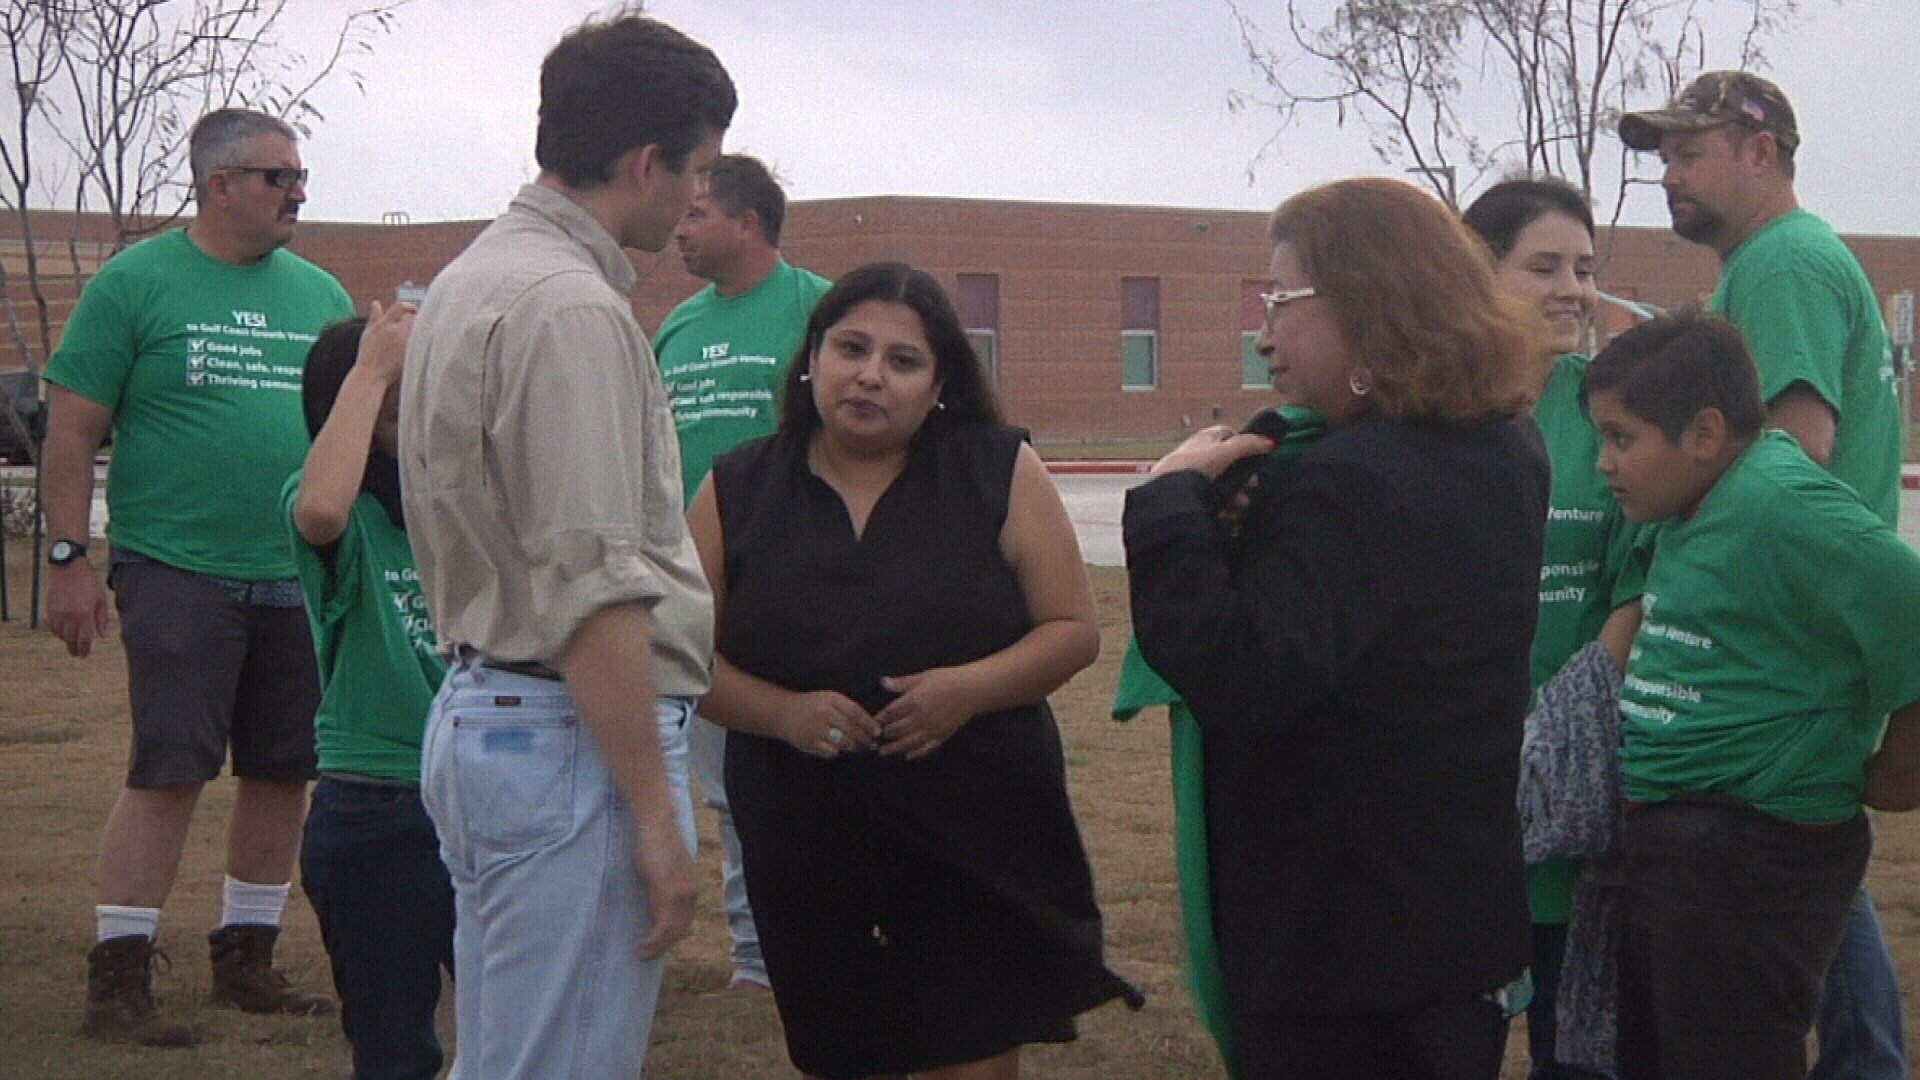 A group called 'United For Growth' supports the proposed ExxonMobil plant coming to San Patricio county.